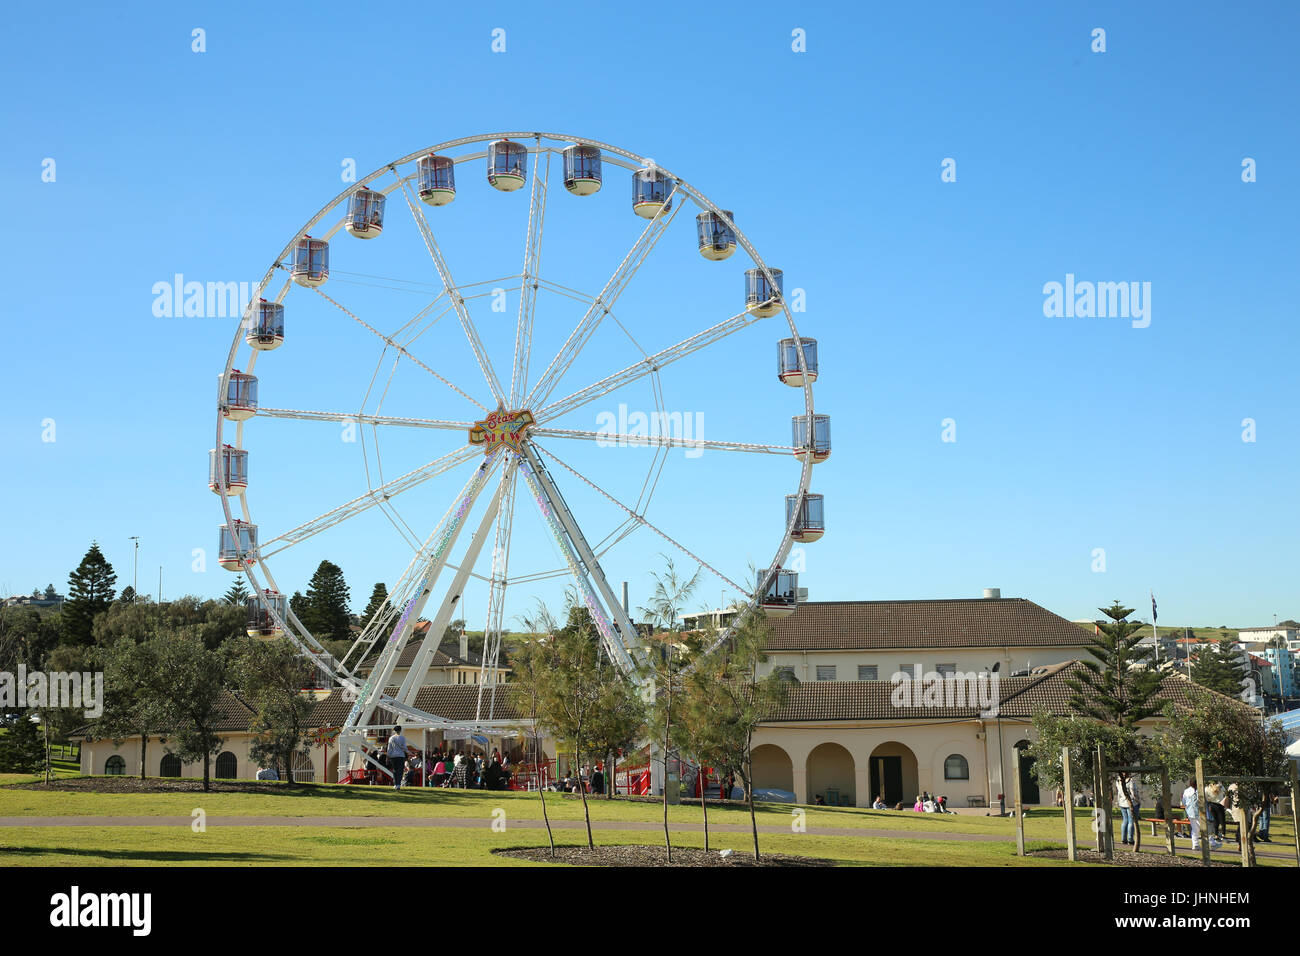 The Bondi Eye 32m high ferris wheel at Bondi Beach for teh Bondi Winter Magic festival, Sydney, Australia. - Stock Image